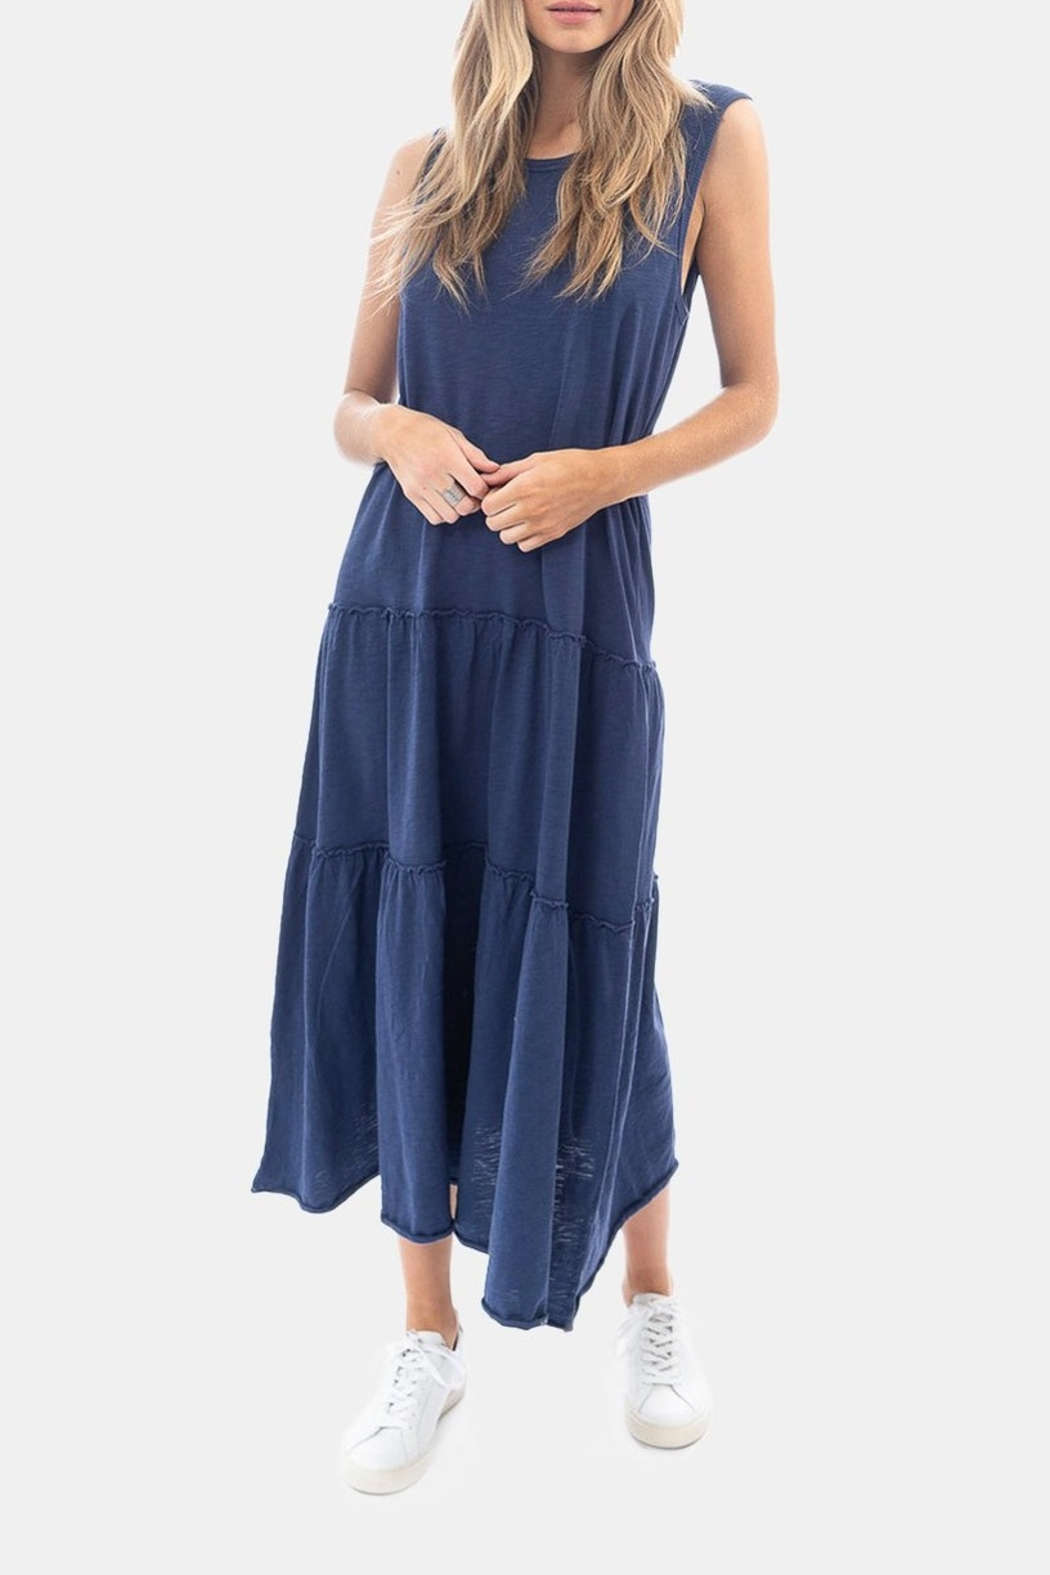 Dylan by True Grit Tiered Crew Dress - Main Image